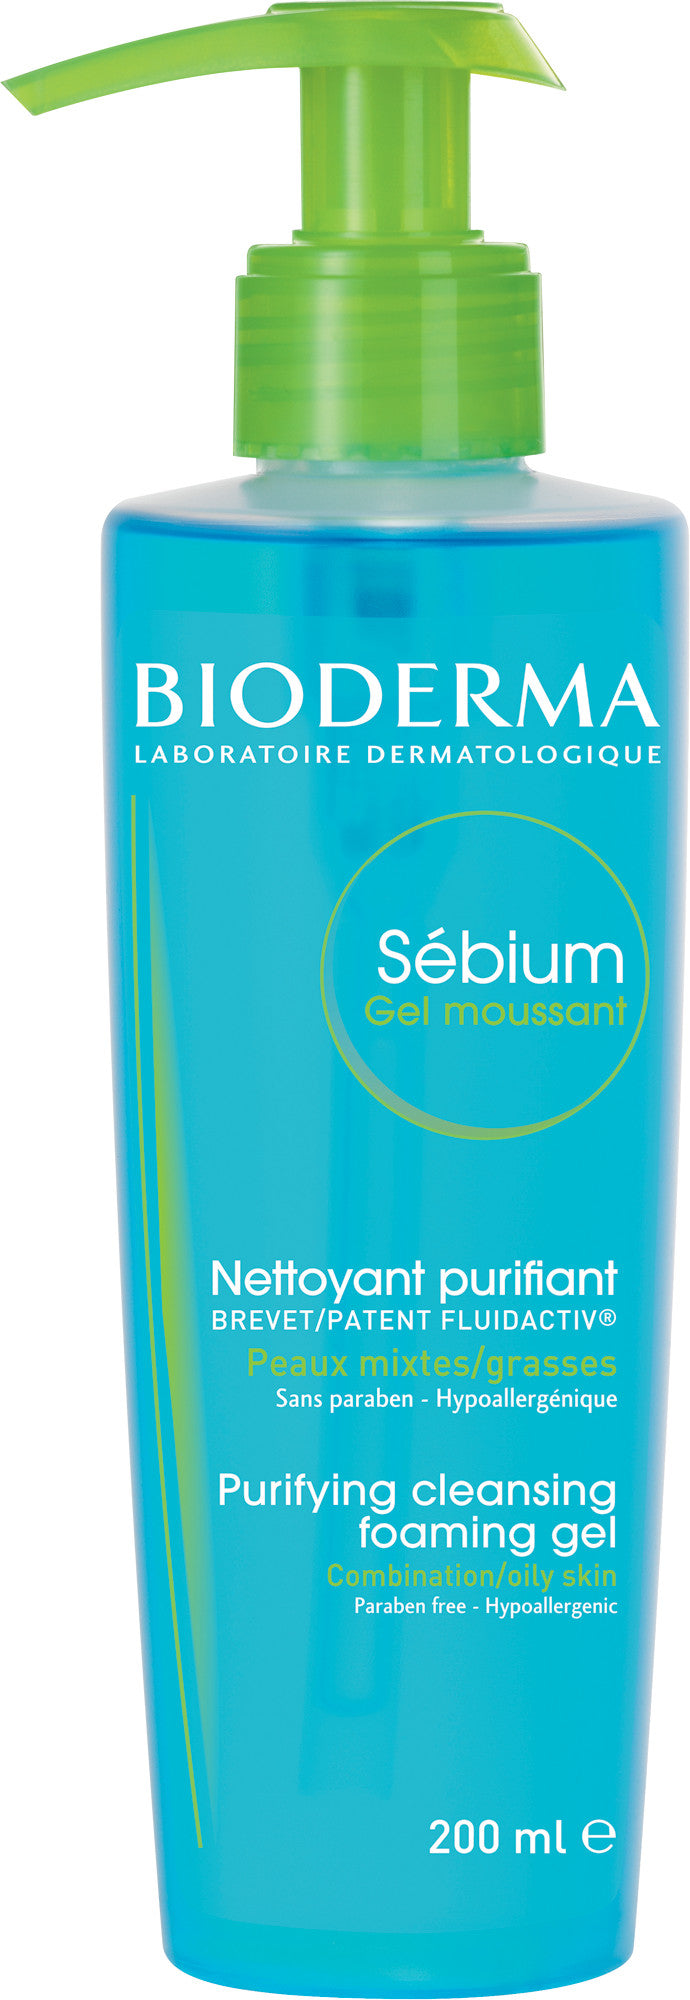 Bioderma Sebium Purifying Cleansing Foaming Gel - Sébium Gel Moussant 200 ml